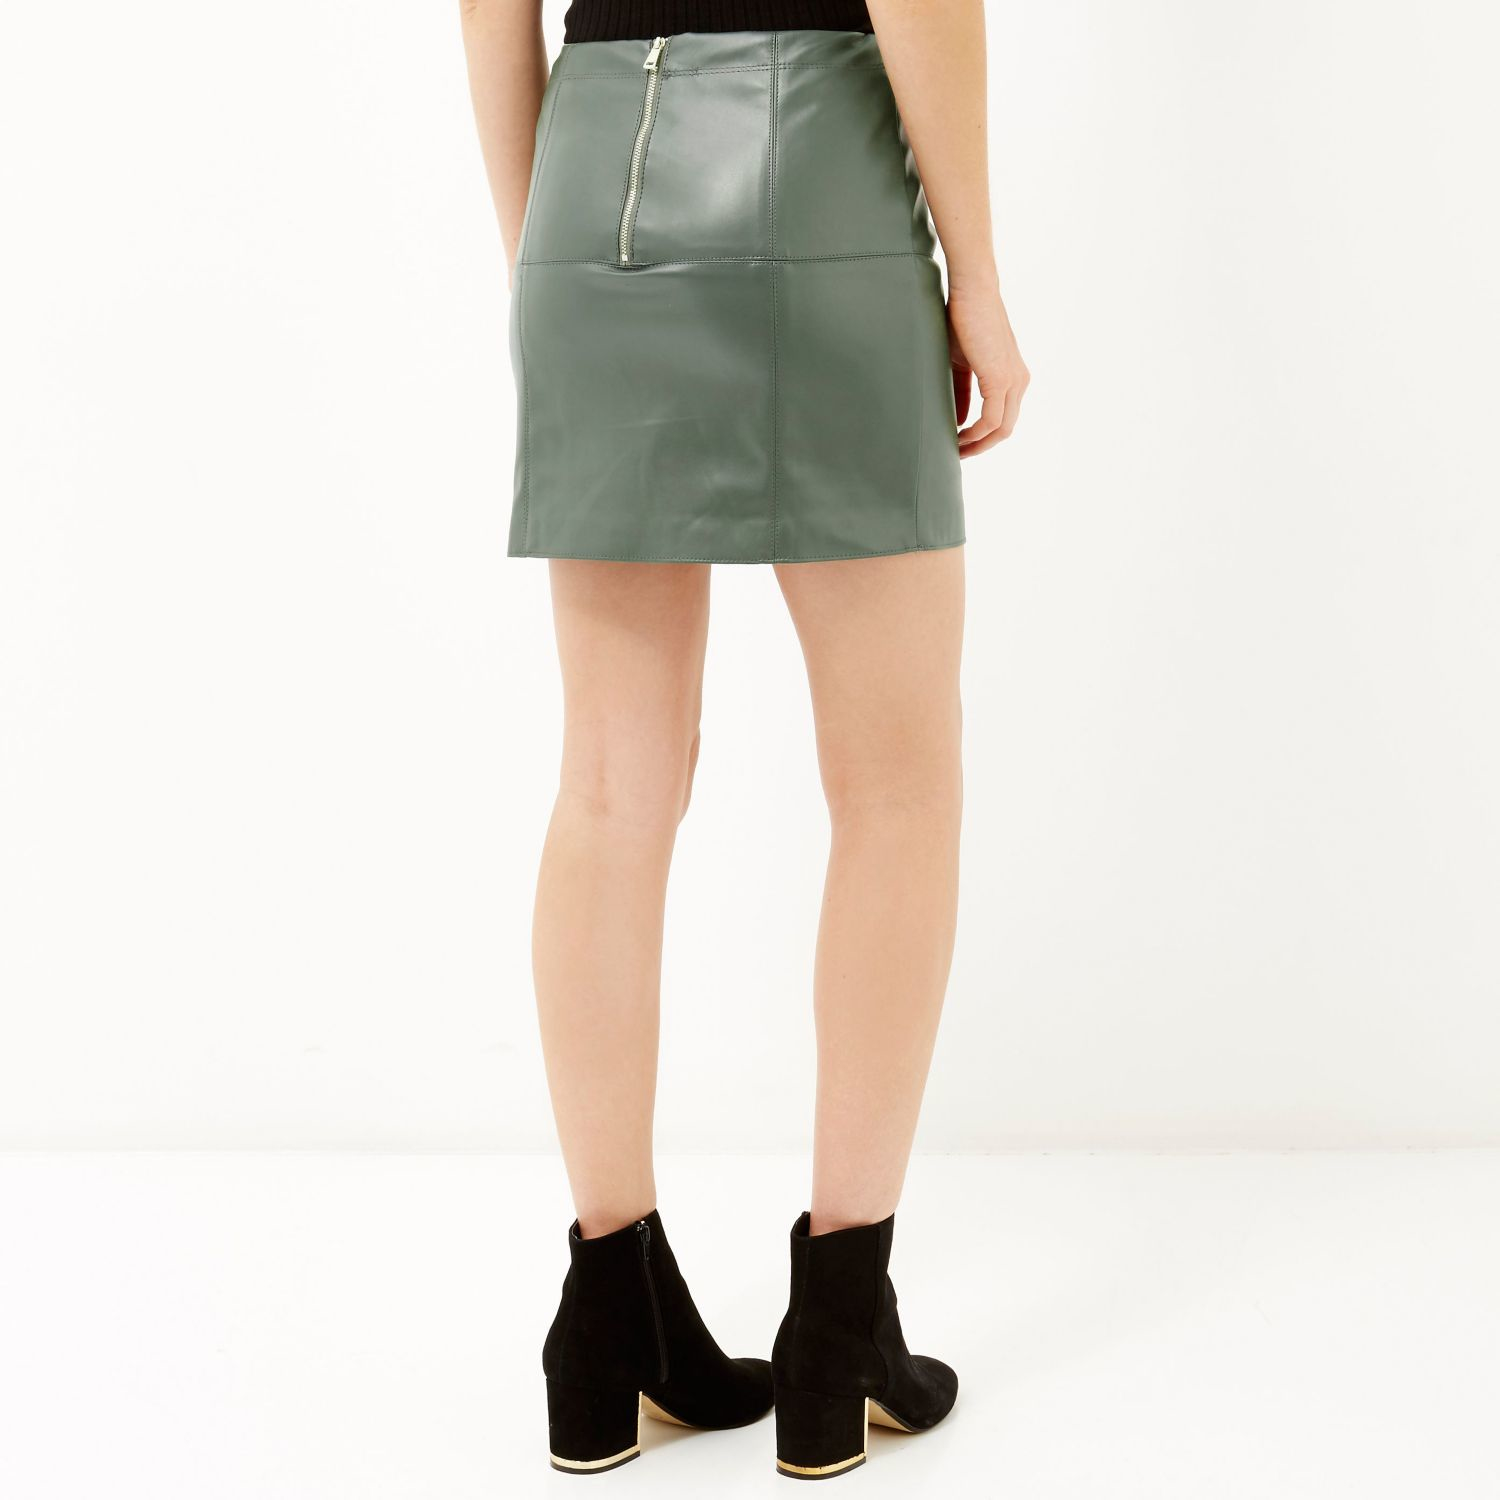 Green Leather Mini Skirt - Skirts